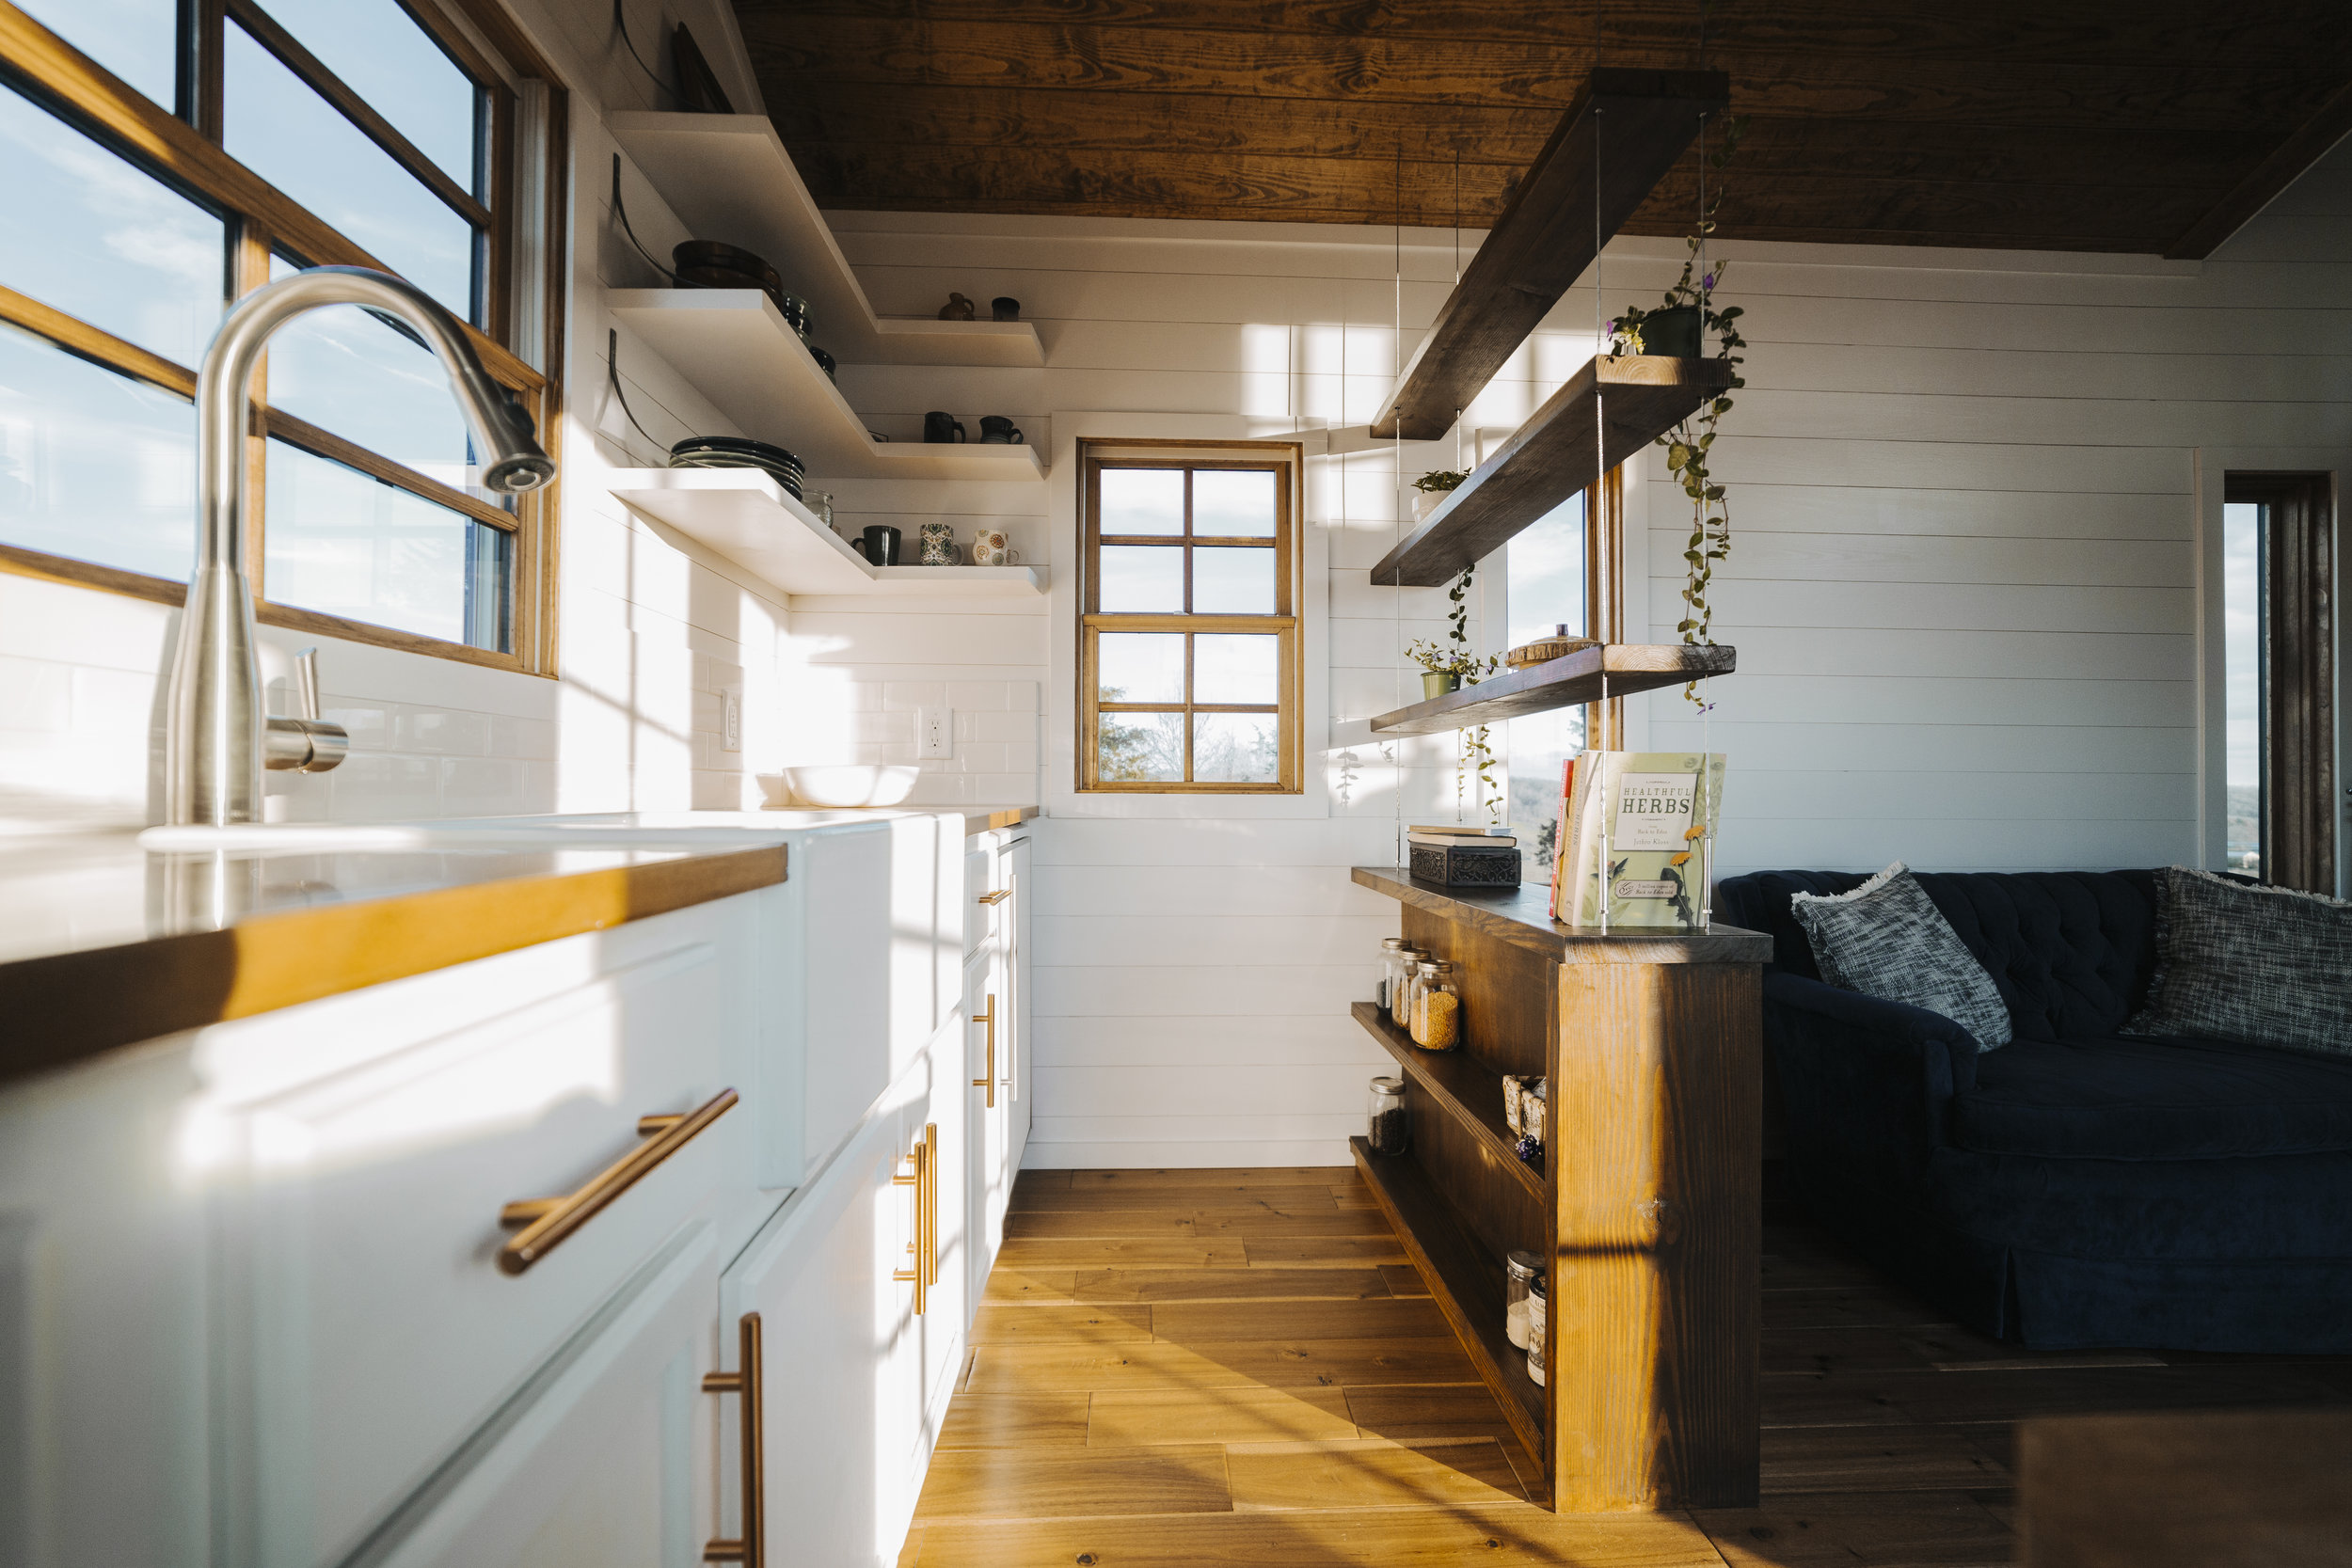 The Monocle by Wind River Tiny Homes - farmhouse sink, copper cabinet pulls, suspended cable shelving, open shelving, custom steel brackets